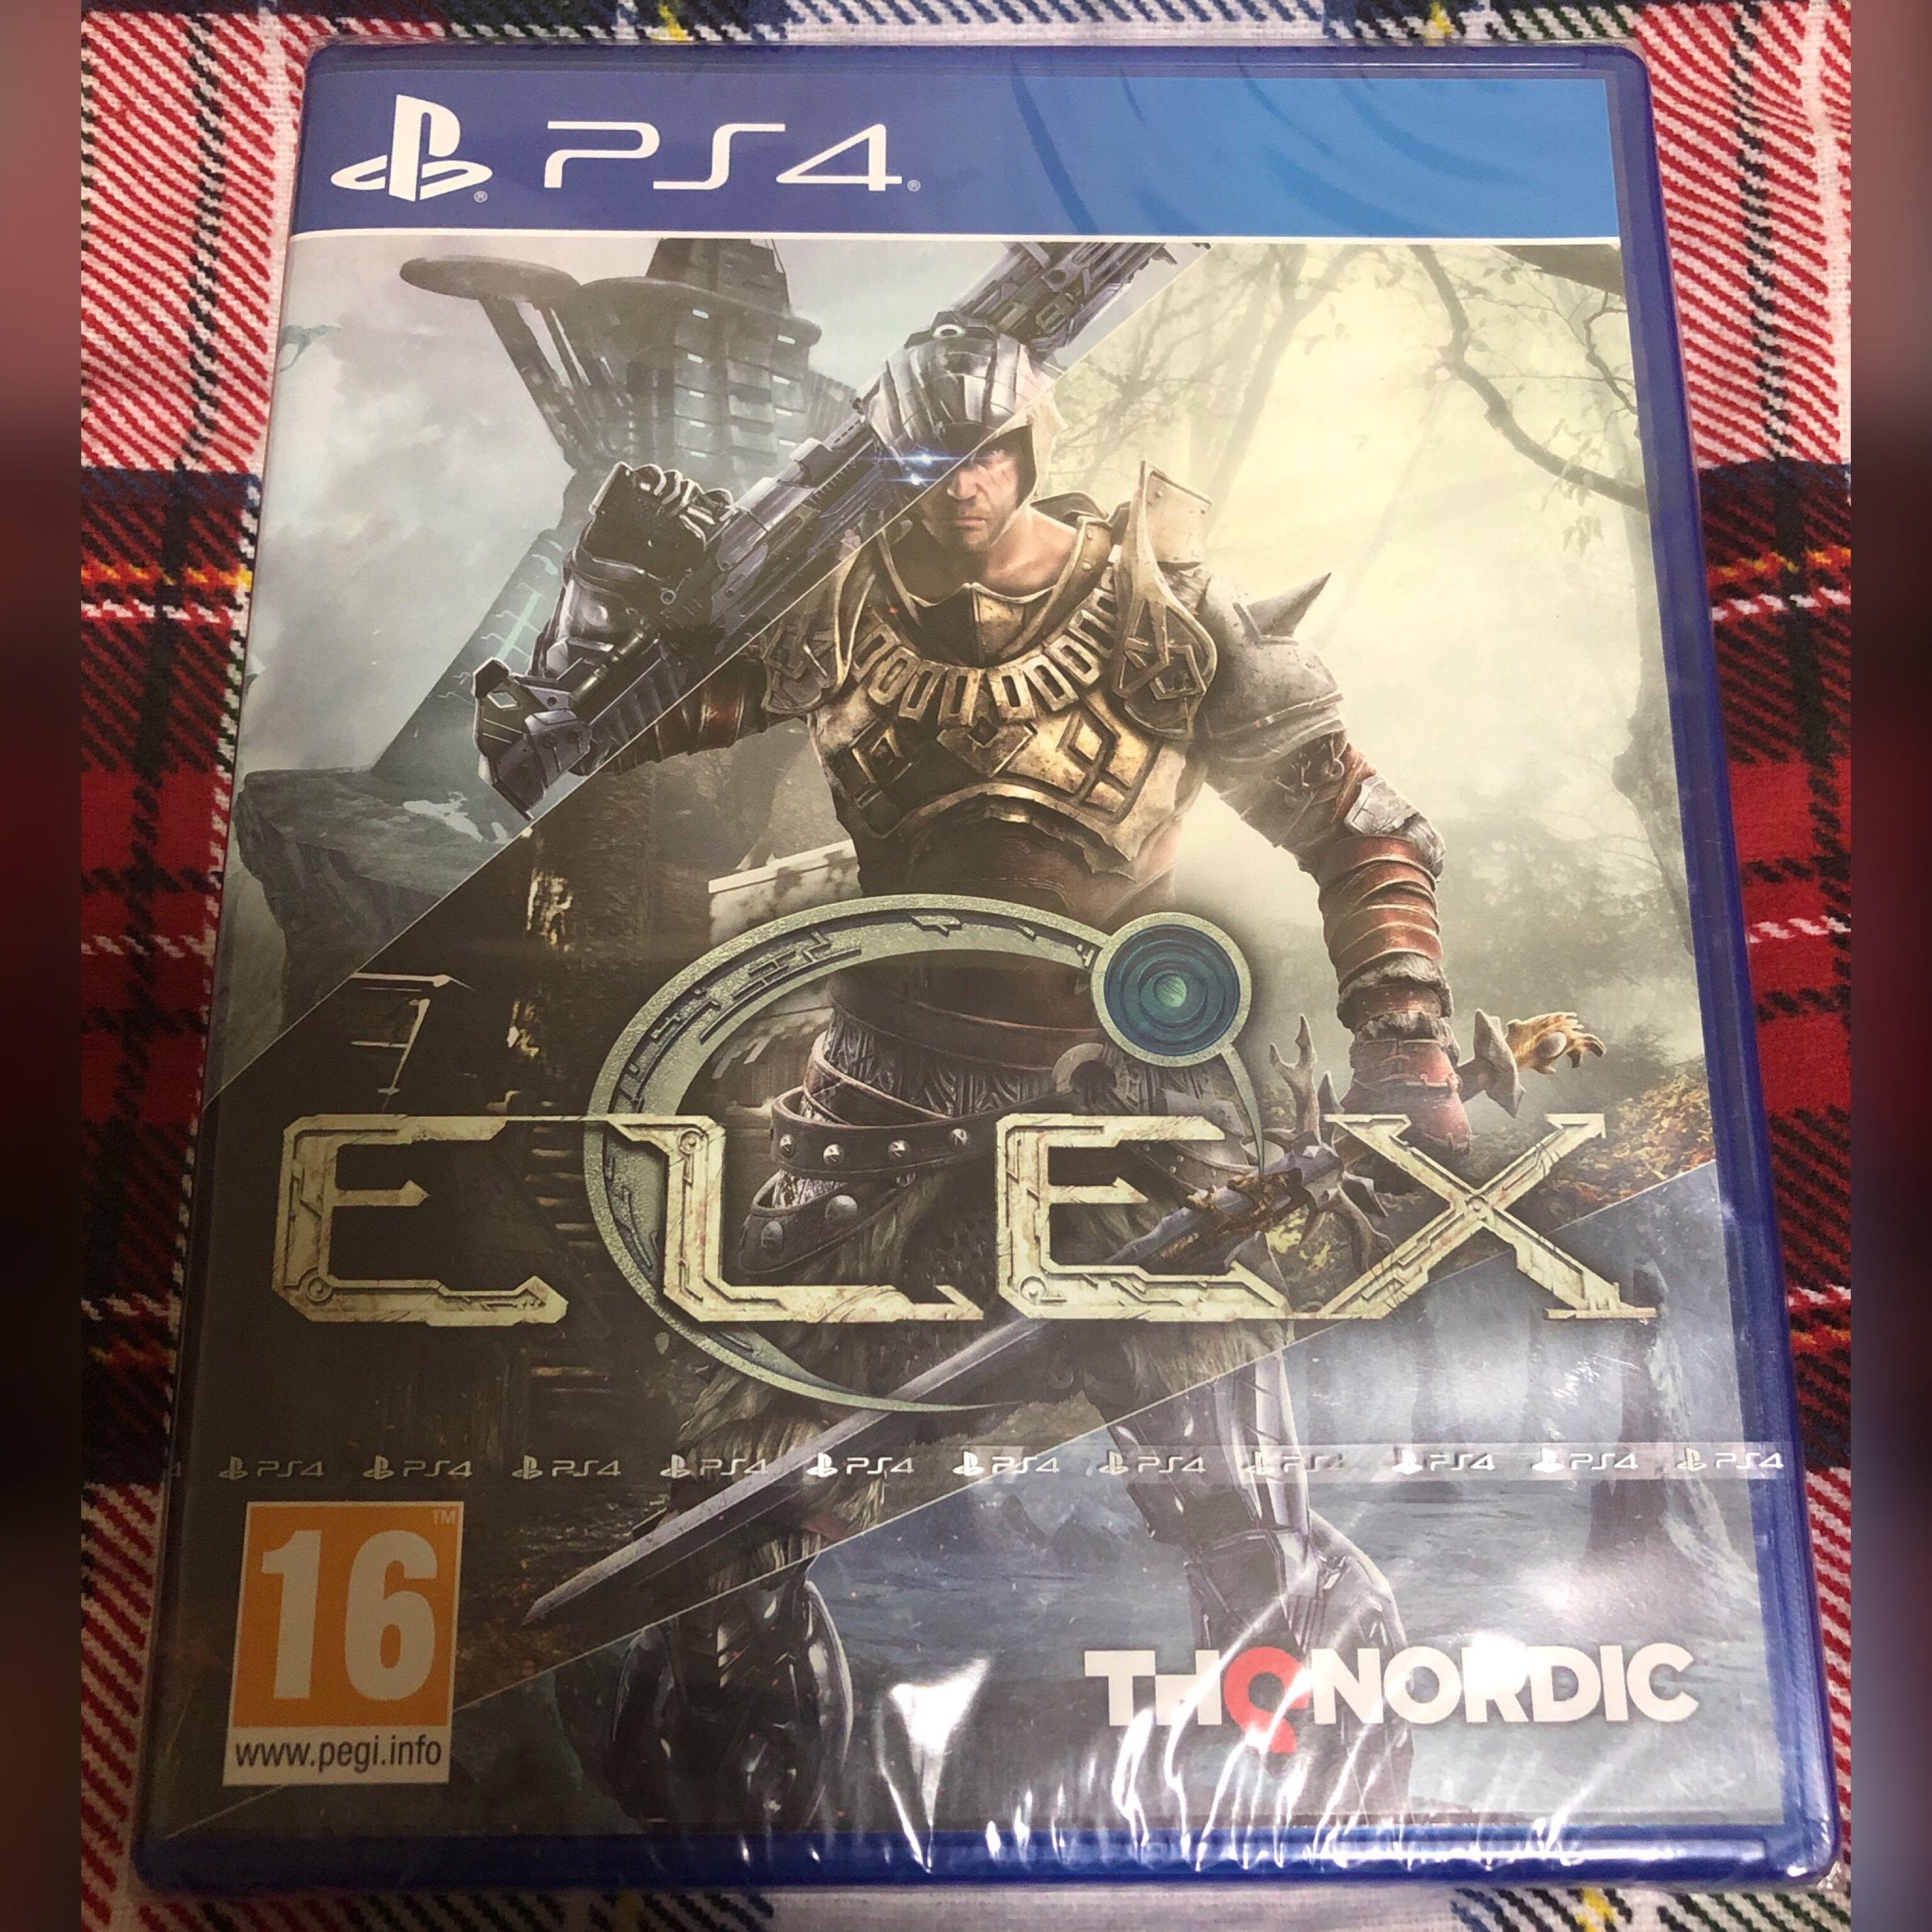 NEW* Elex PS4 RPG Game Playstation 4 PS 4, Toys & Games